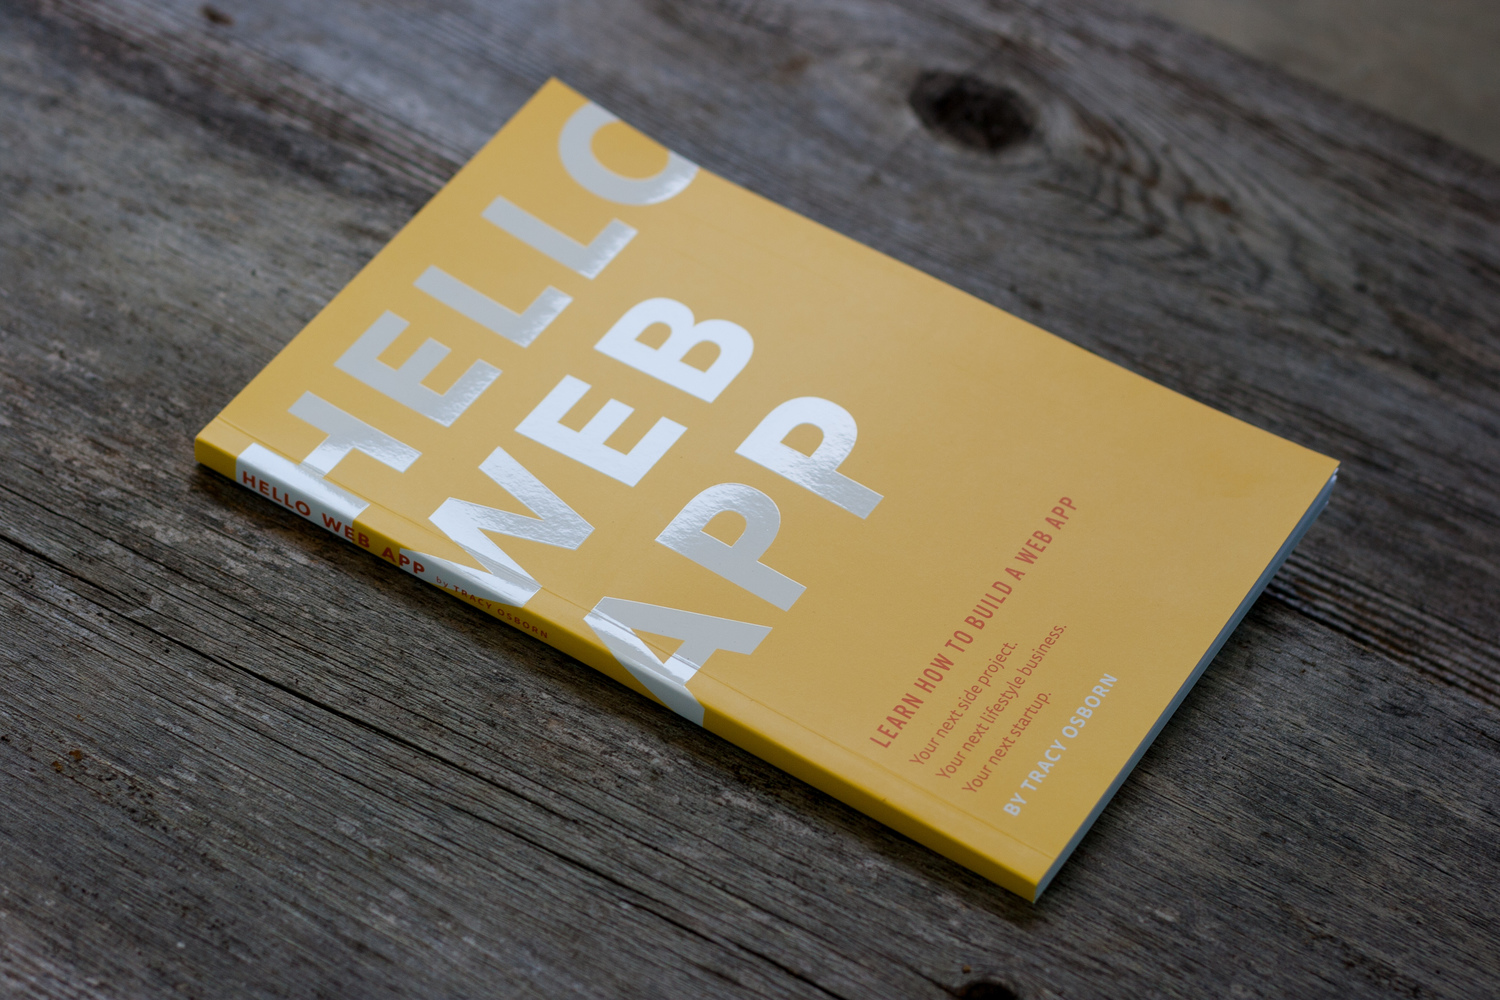 Hello Web App is now free to read online during the Hello Web Design Kickstarter!